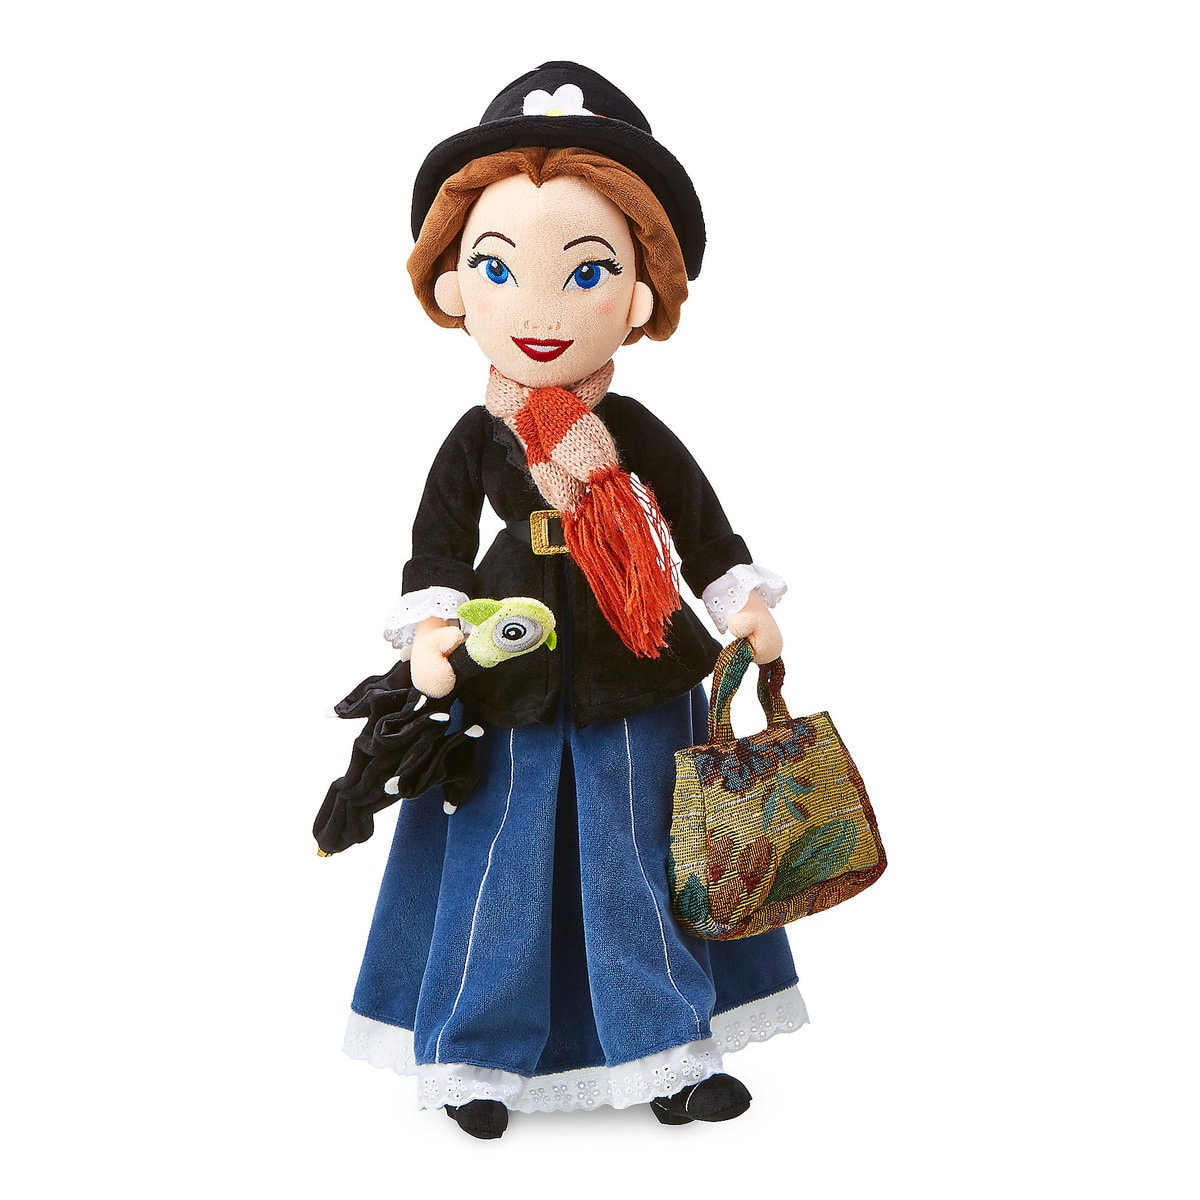 Toys For Mary Poppins : Mary poppins returns merchandise out now diskingdom